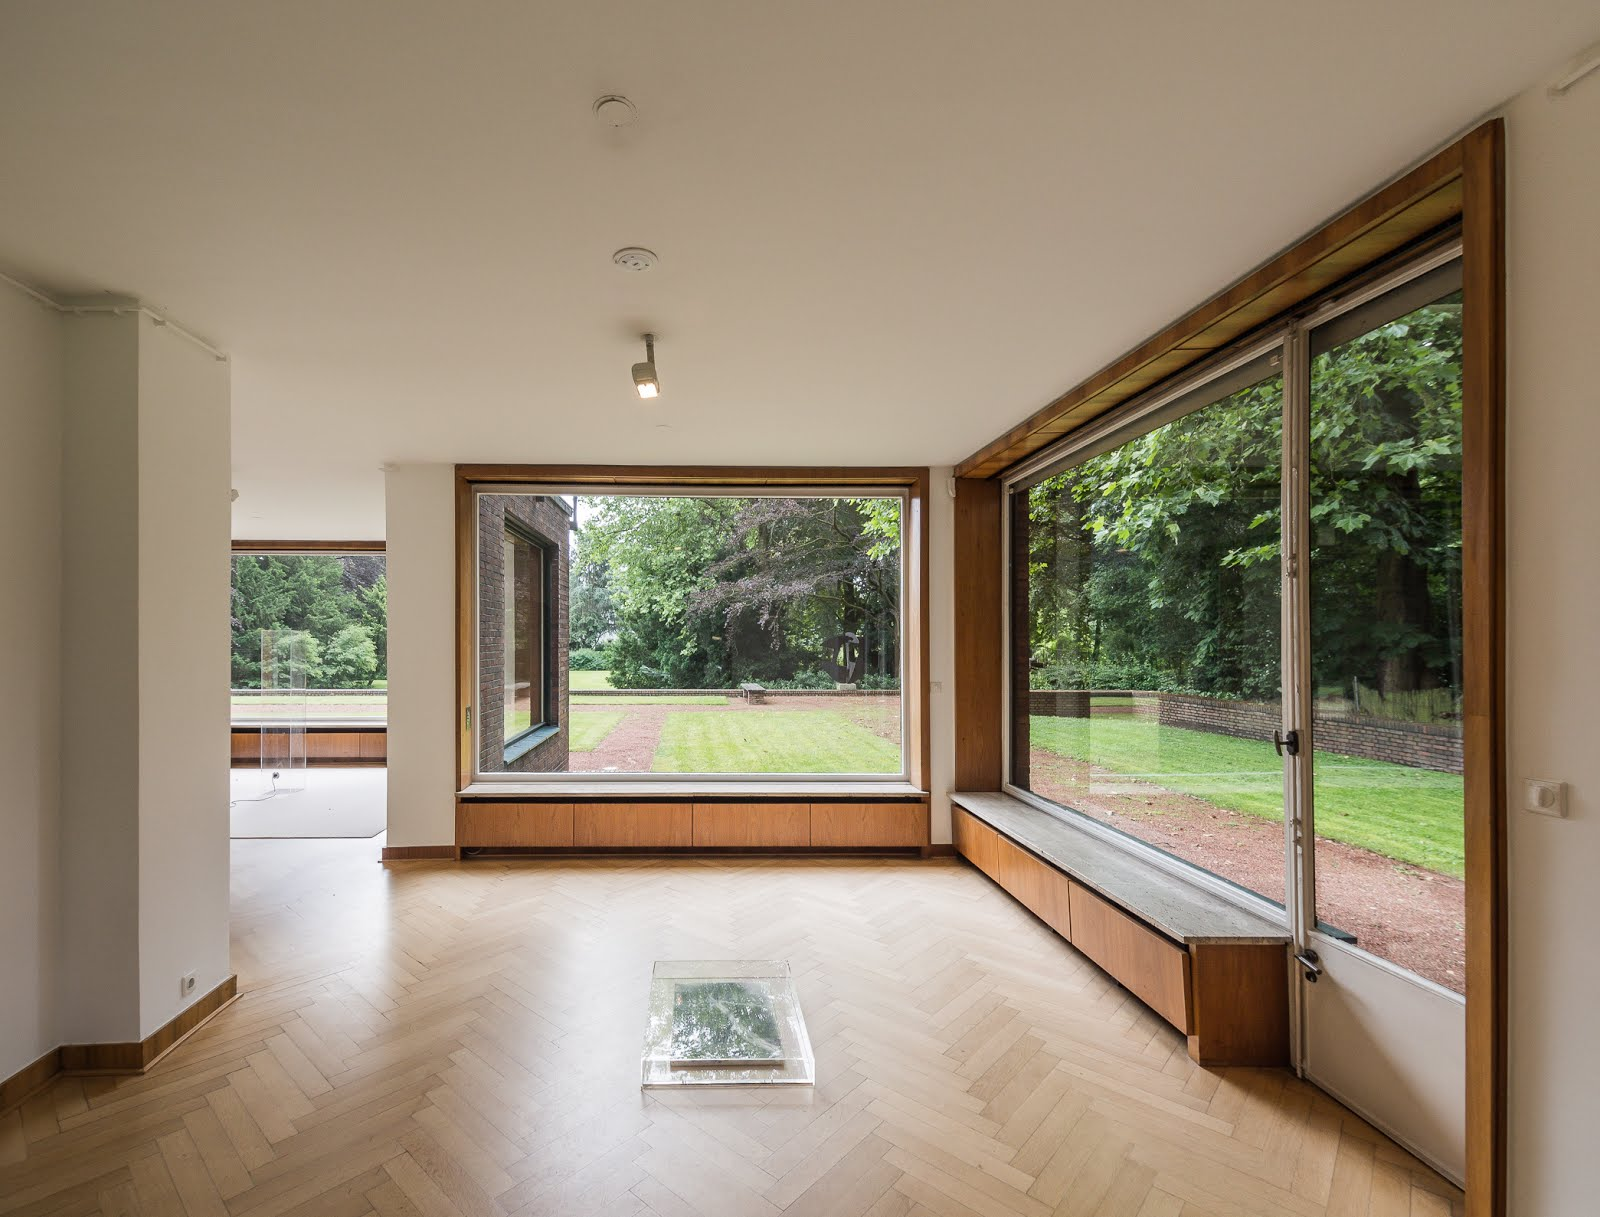 austin cubed: dancing with architecture: Mies van der Rohe\'s Lang ...